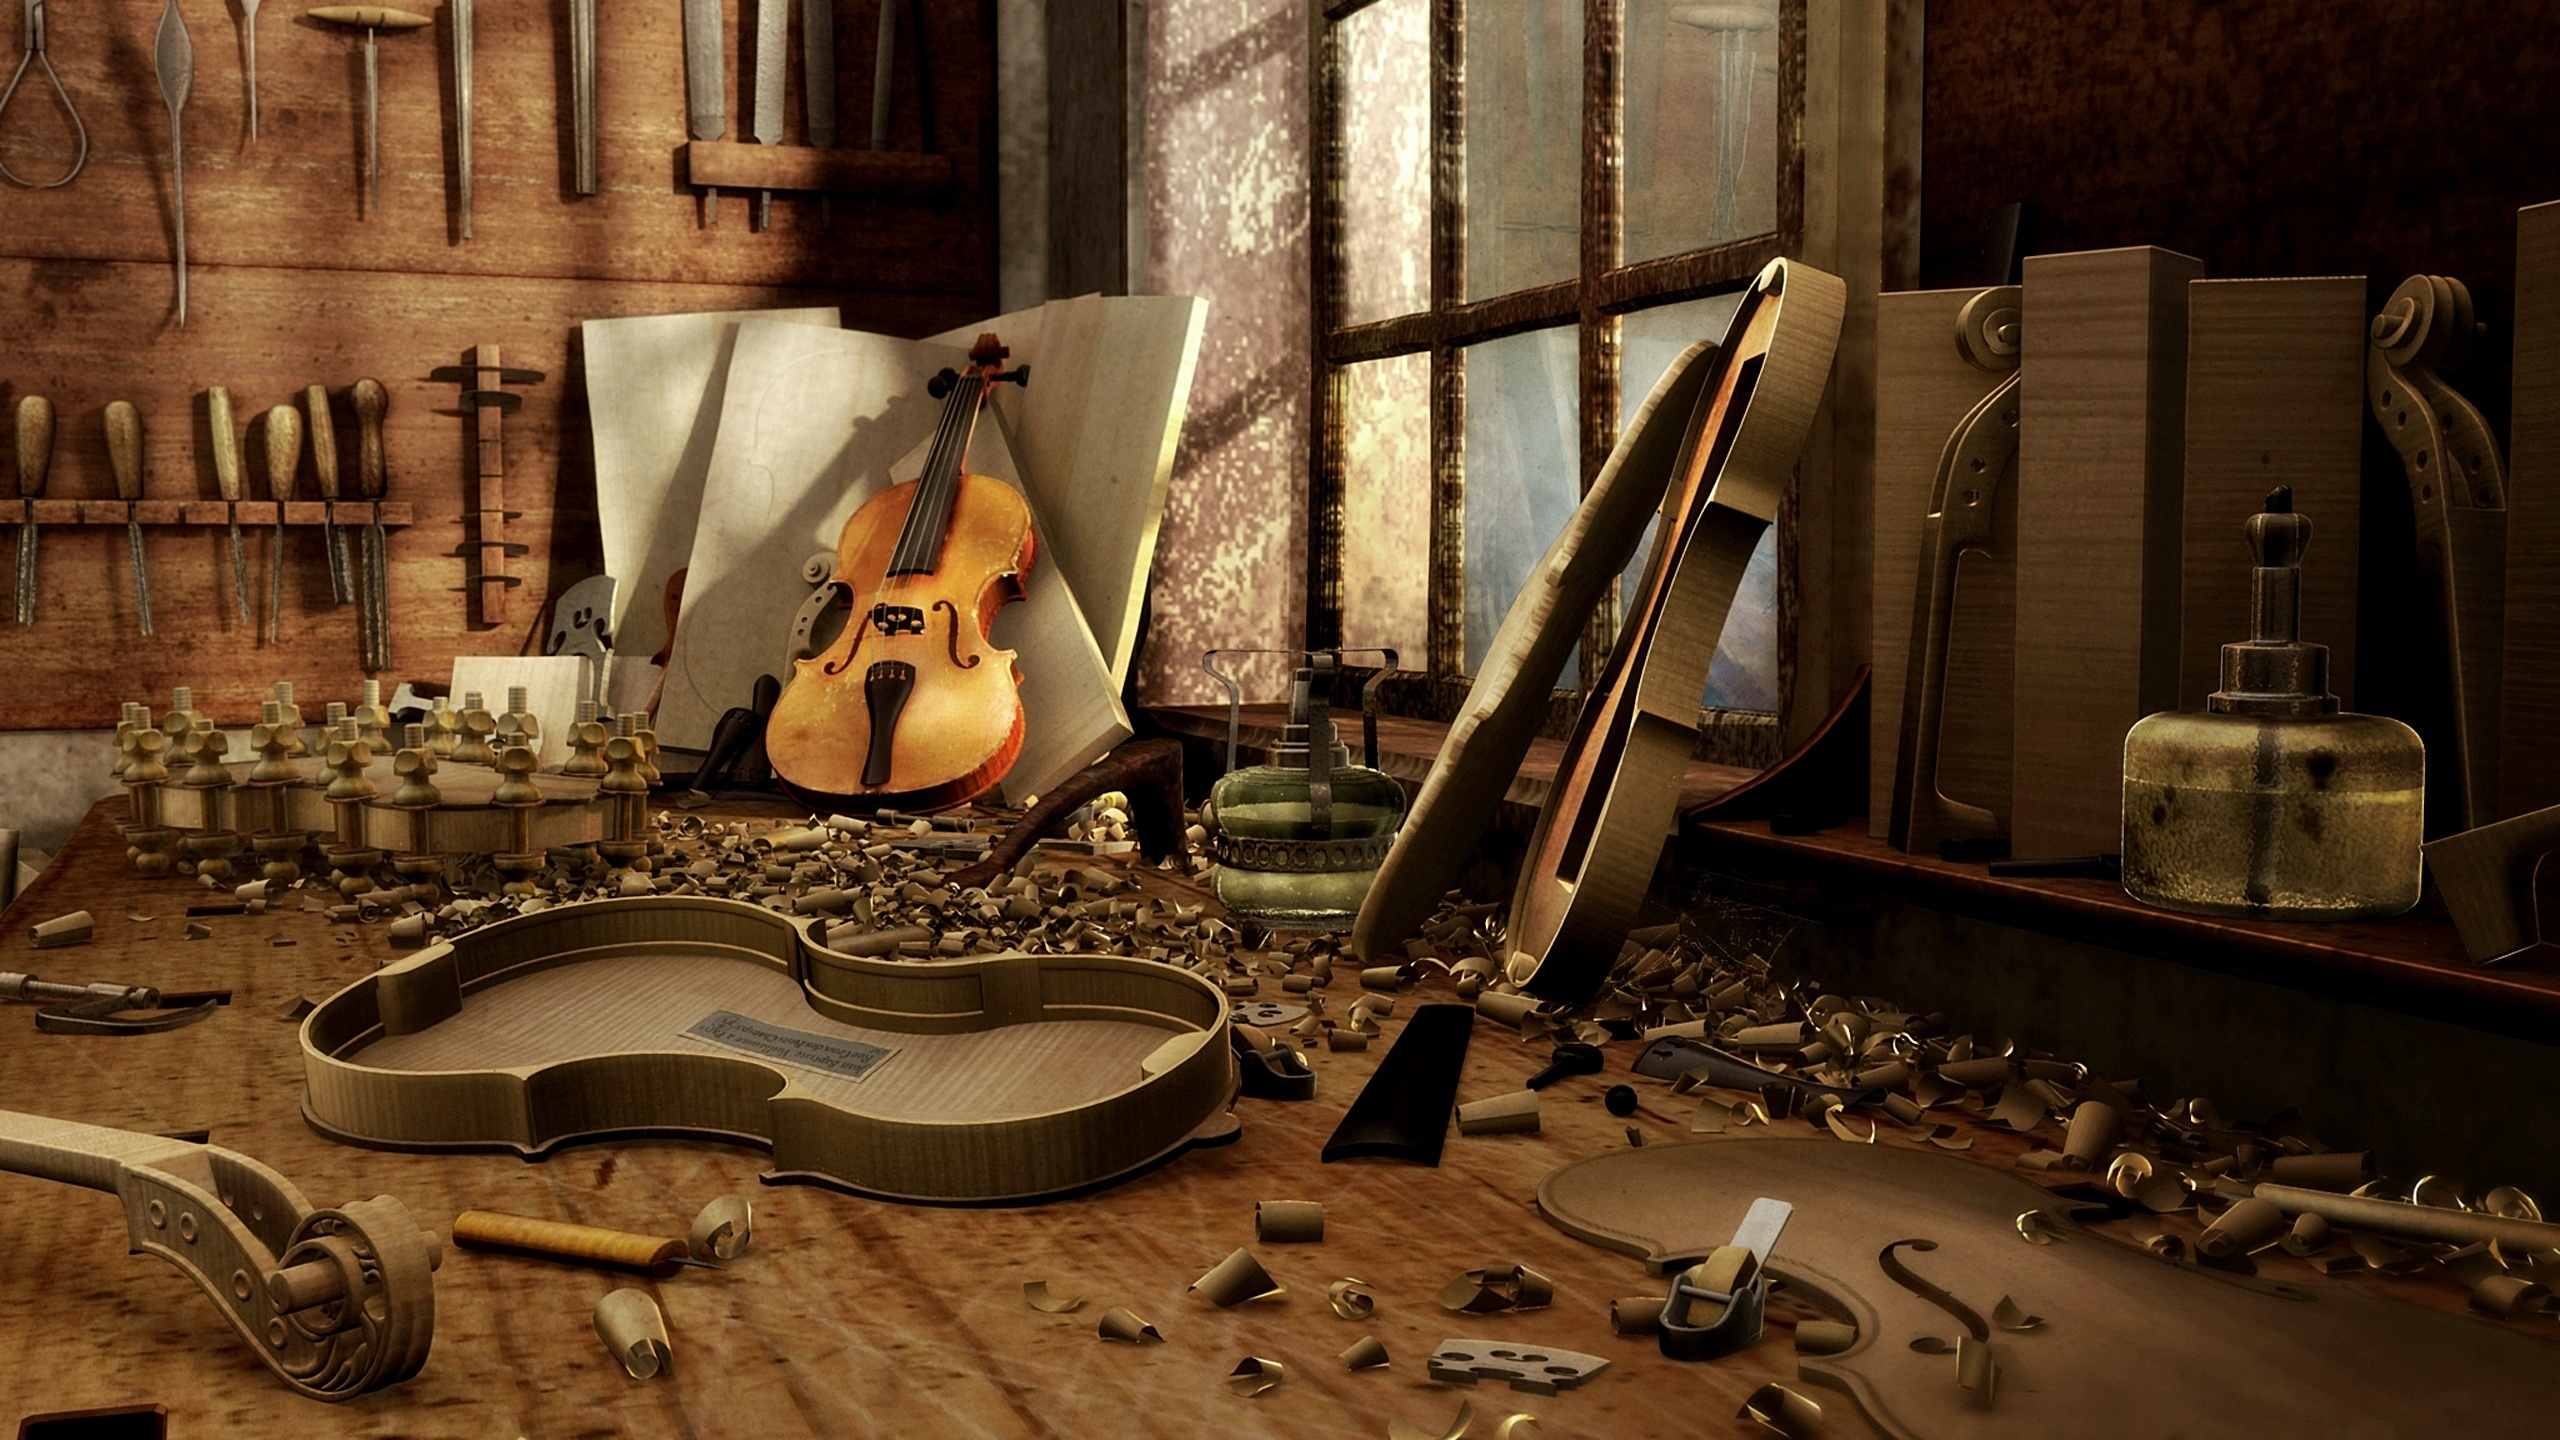 Violine Full Hd Wallpaper And Hintergrund 2560x1440 Id